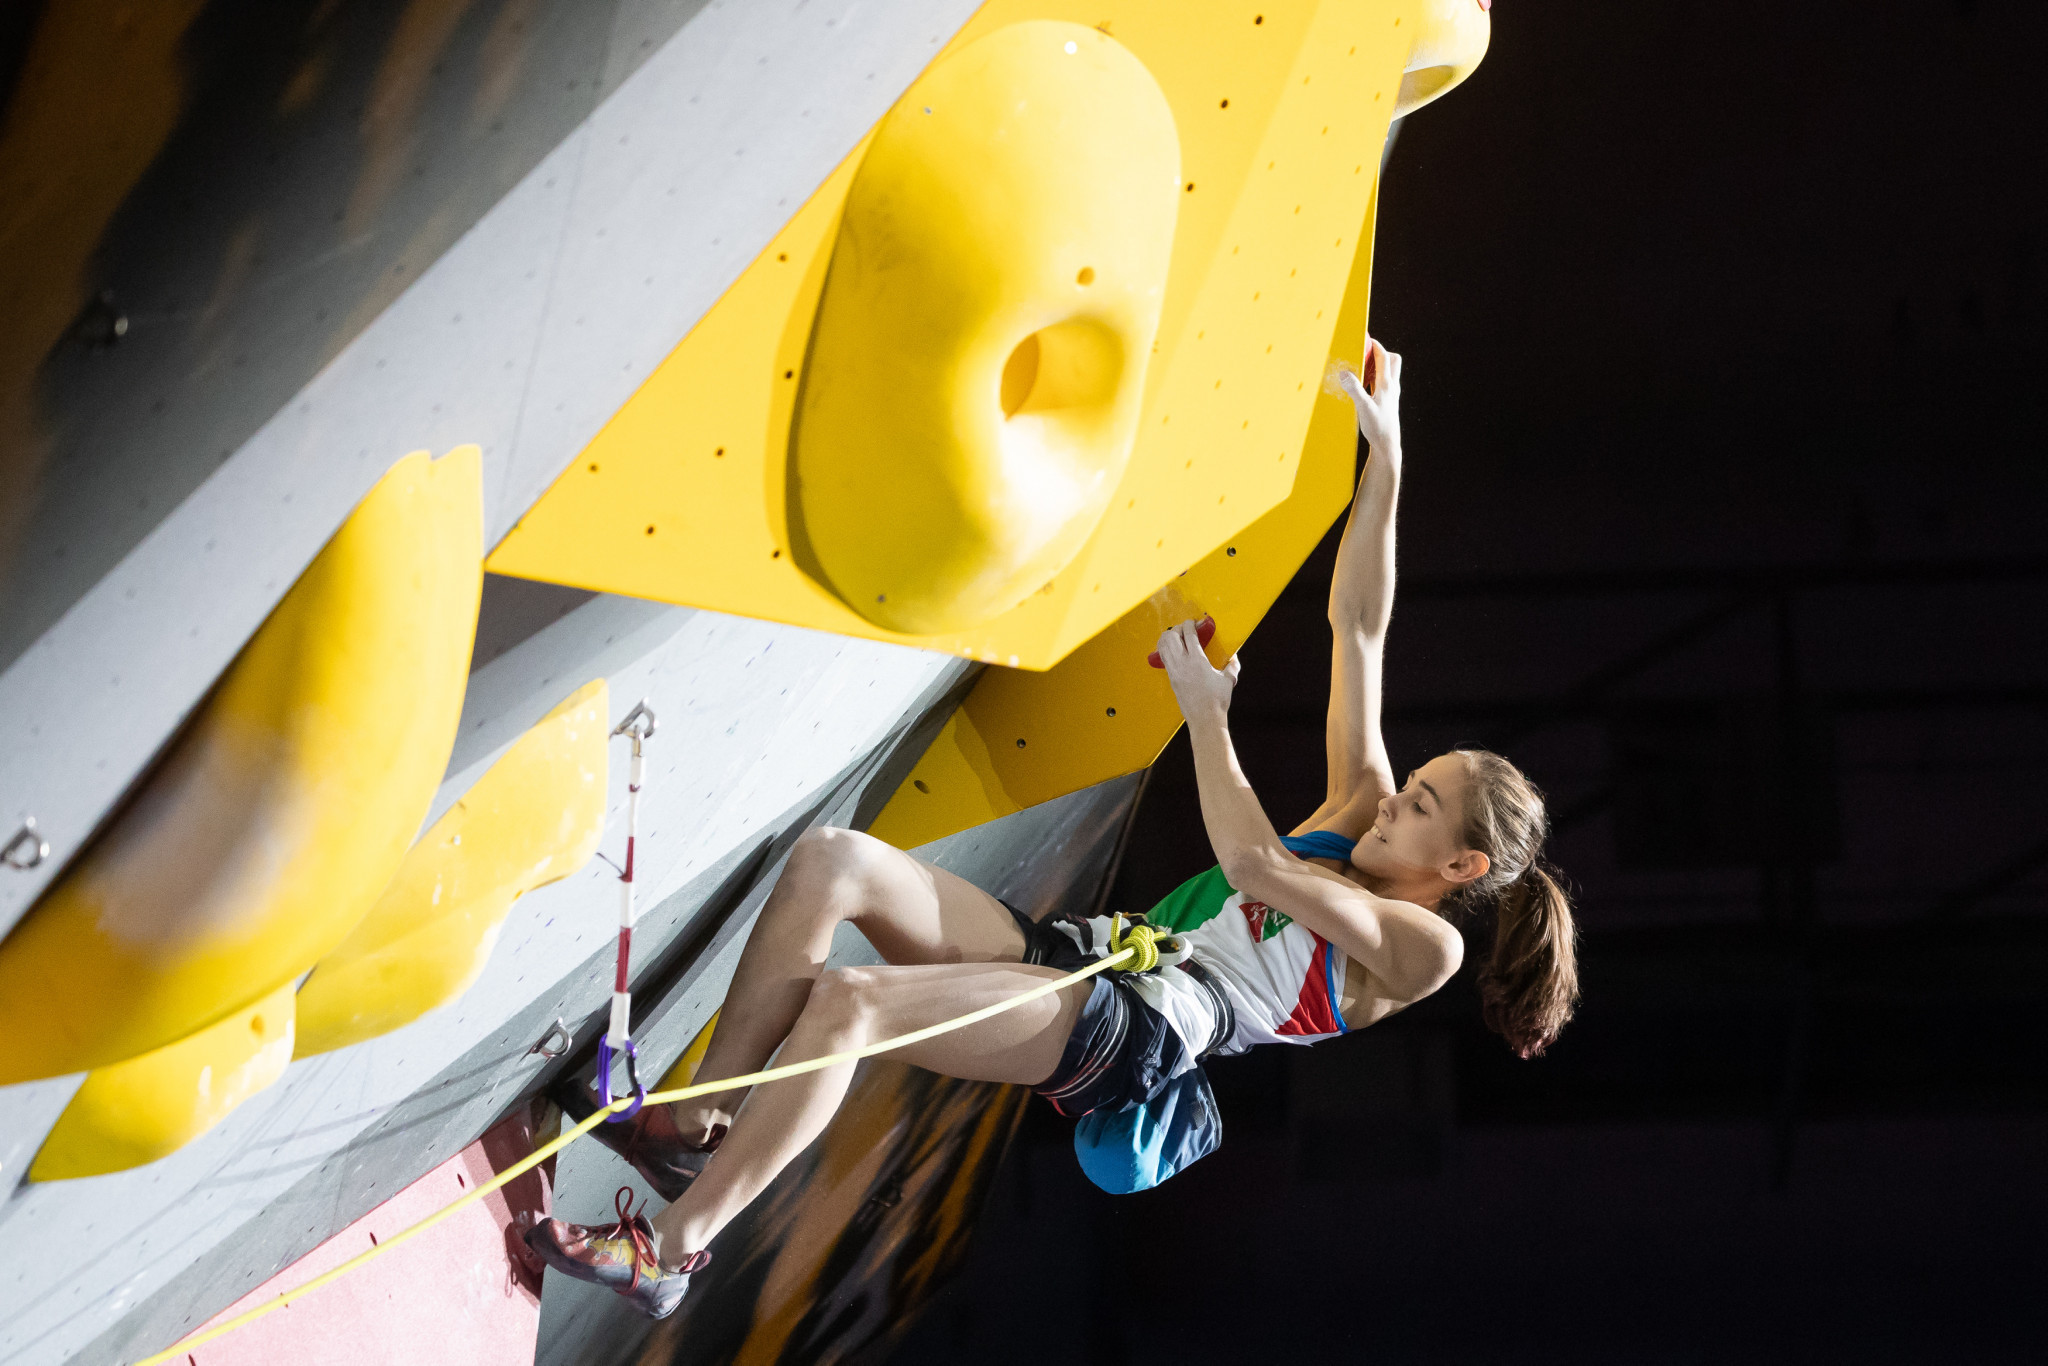 Home favourite Laura Rogora topped the women's junior lead qualification standings on day two of the IFSC Youth World Championships in Arco in Italy ©Getty Images